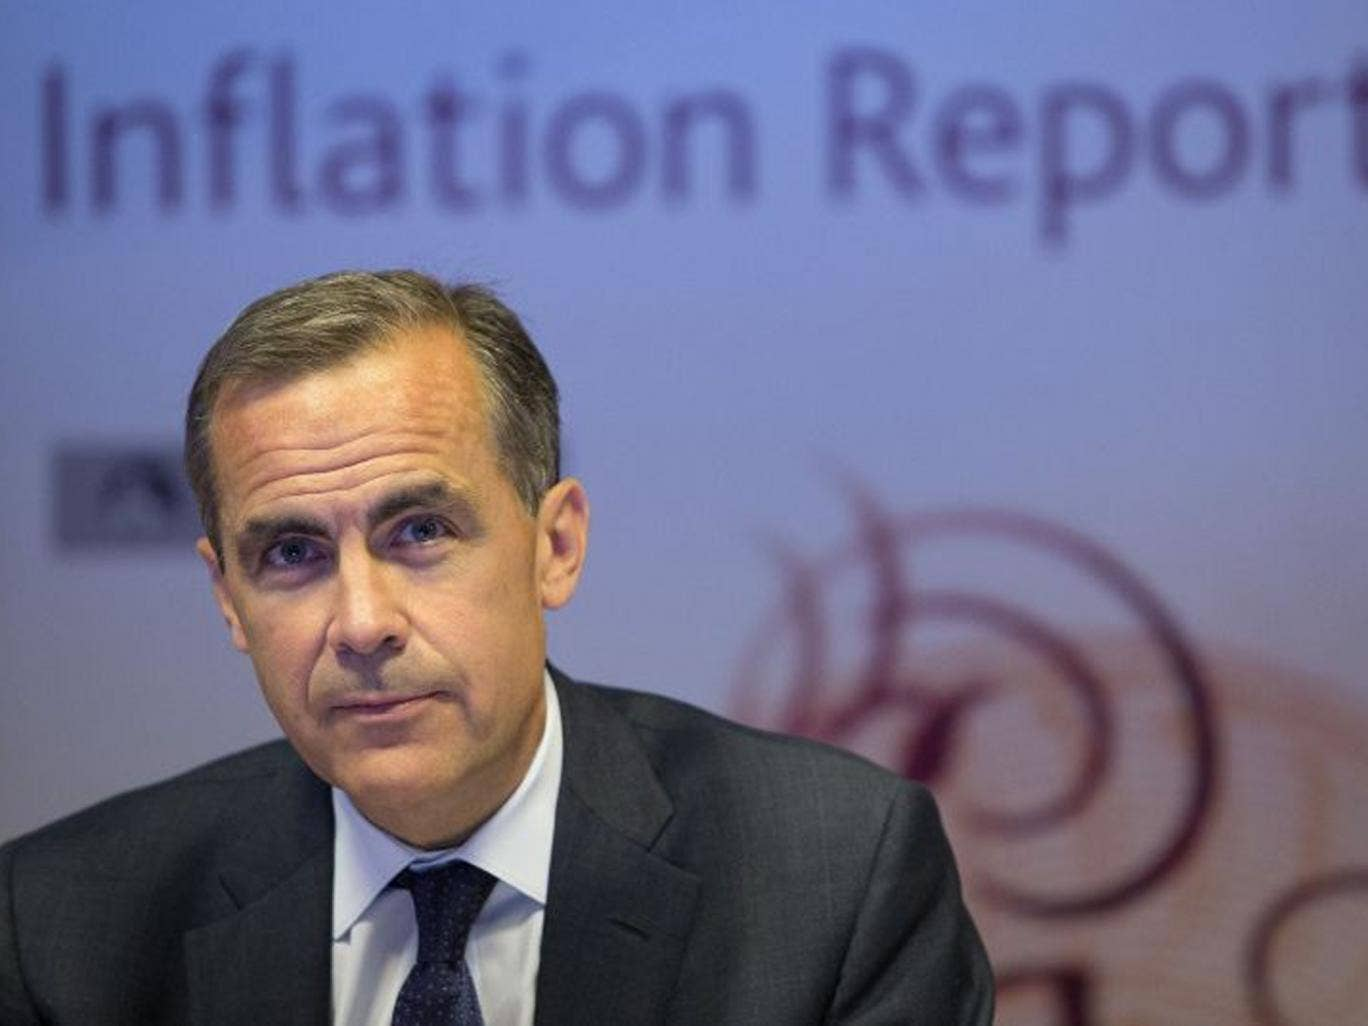 Mark Carney's predictions may change faster than he could imagine in the UK with its economic weather